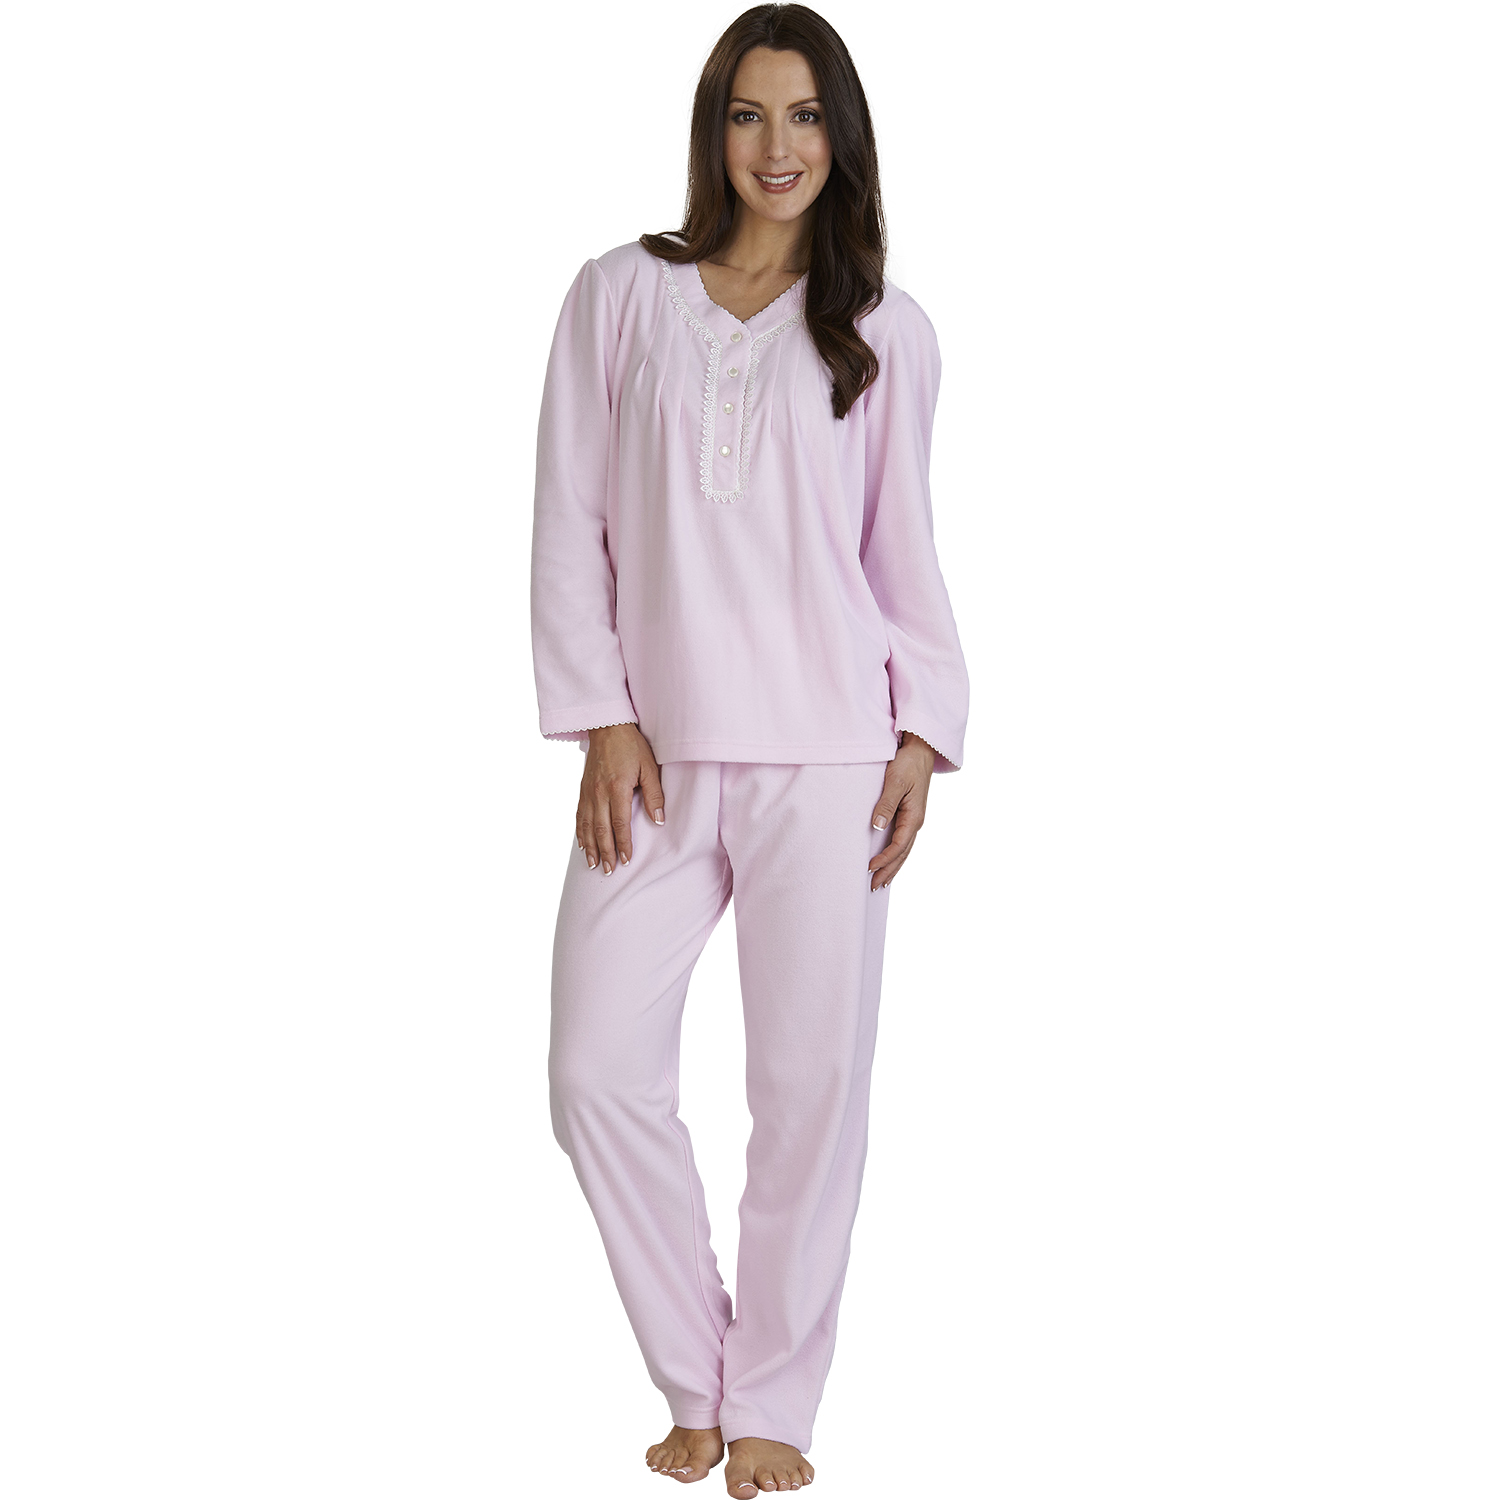 Shop for womens fleece pajamas online at Target. Free shipping on purchases over $35 and save 5% every day with your Target REDcard.